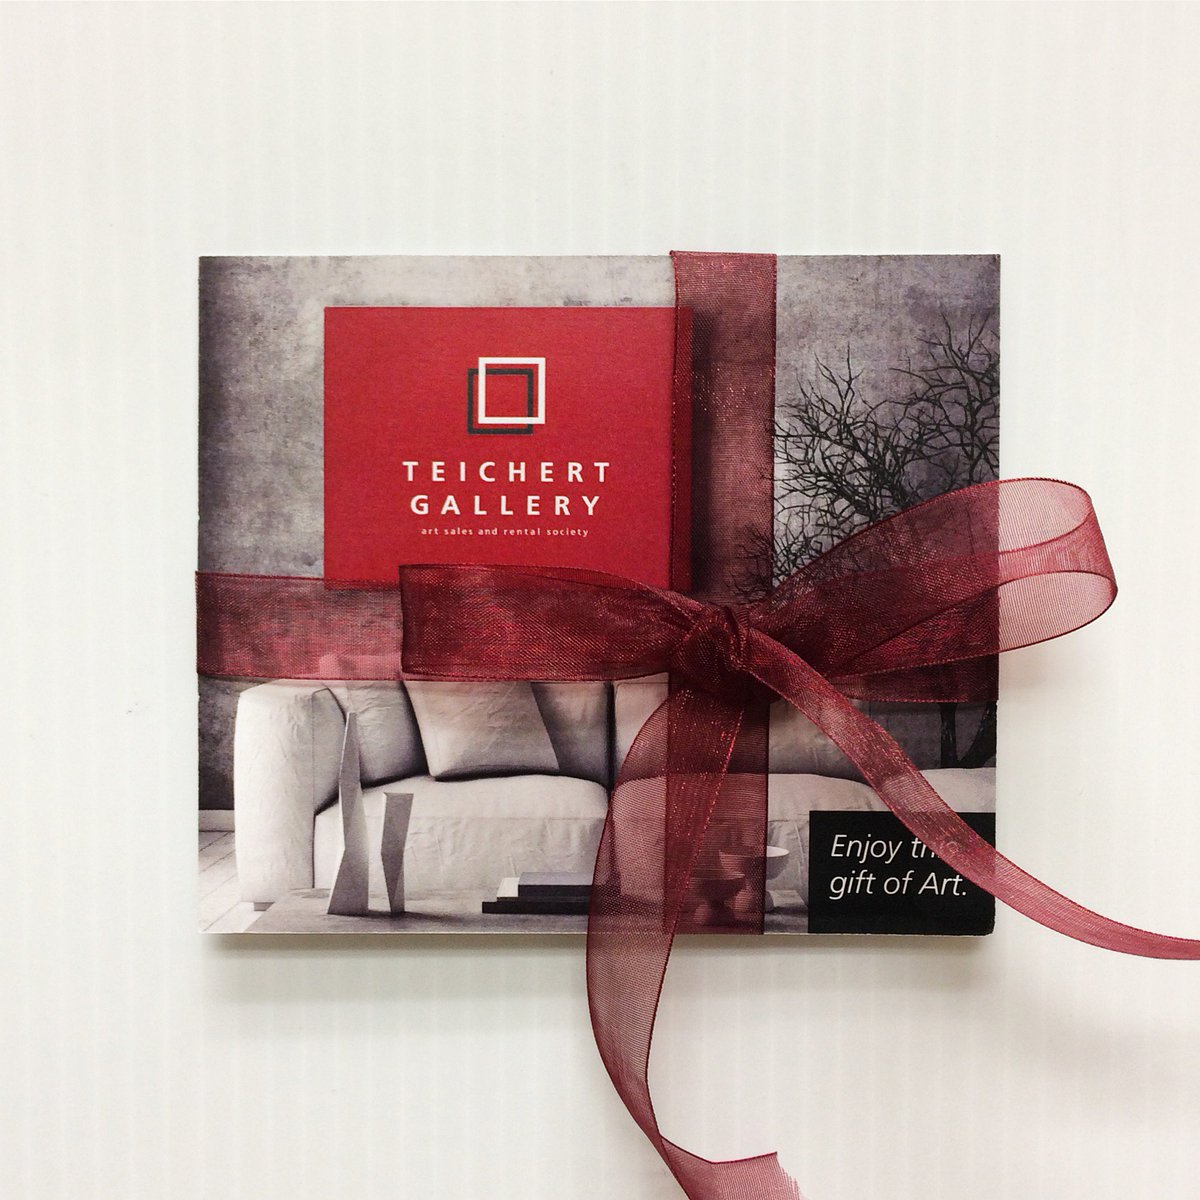 "Teichert Gallery on Twitter: ""Choosing art for someone else can be hard, so we've made it easy with our Gift Cards! Available in any denomination."